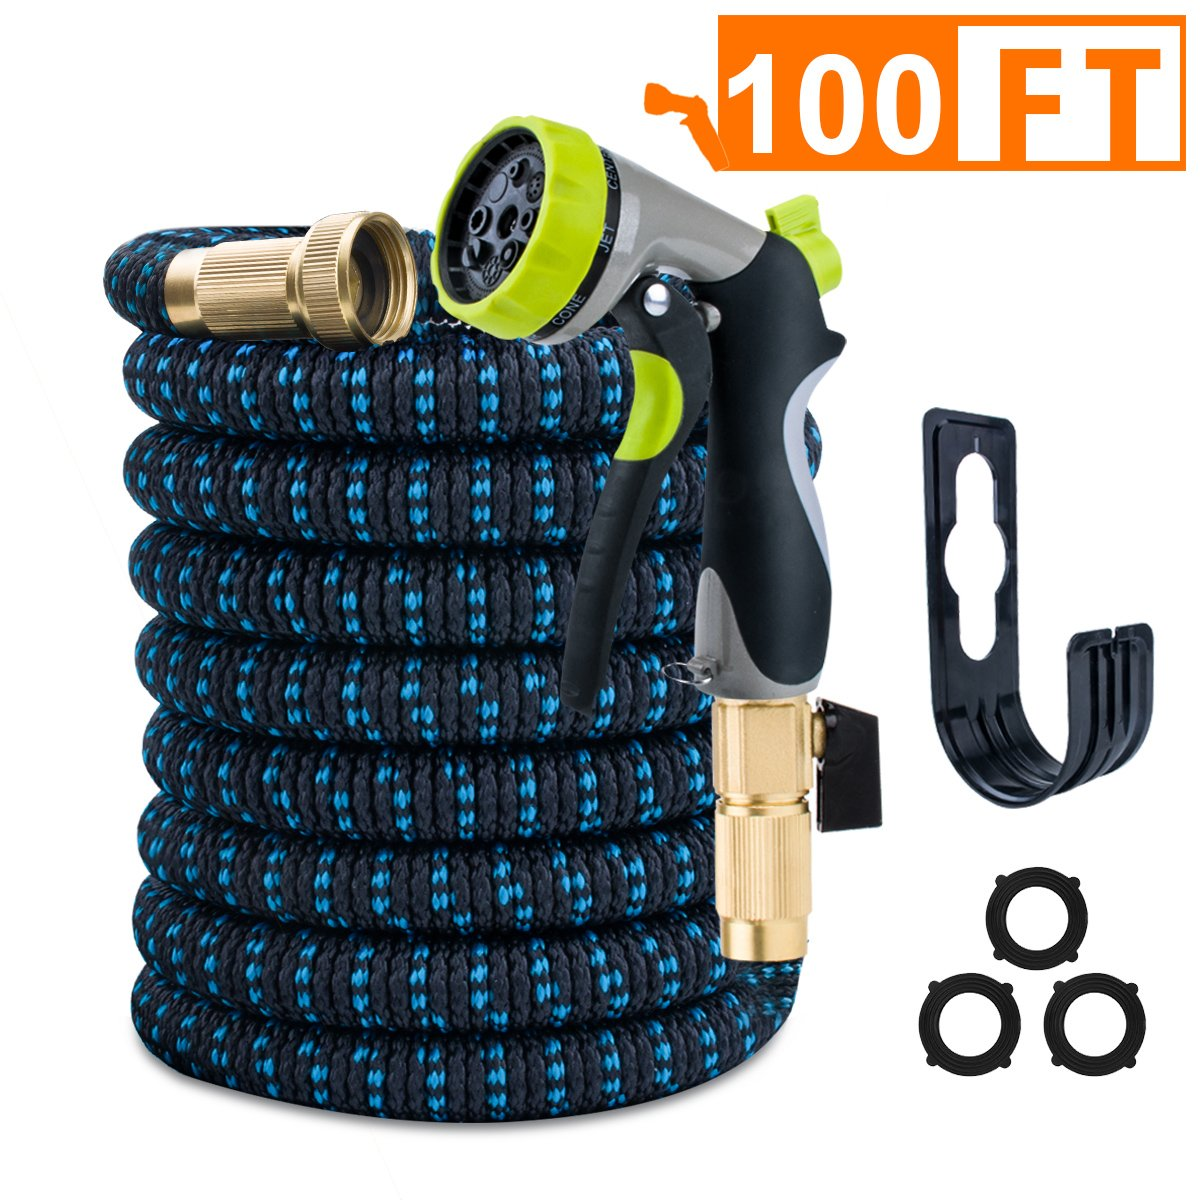 VILUAR Expandable 100ft Garden Hose Lightweight Expandable Water Hose, Durable Double Latex Core, Solid Brass Fittings, 8 function metal spray nozzle, 3 Extra Rubber Gaskets